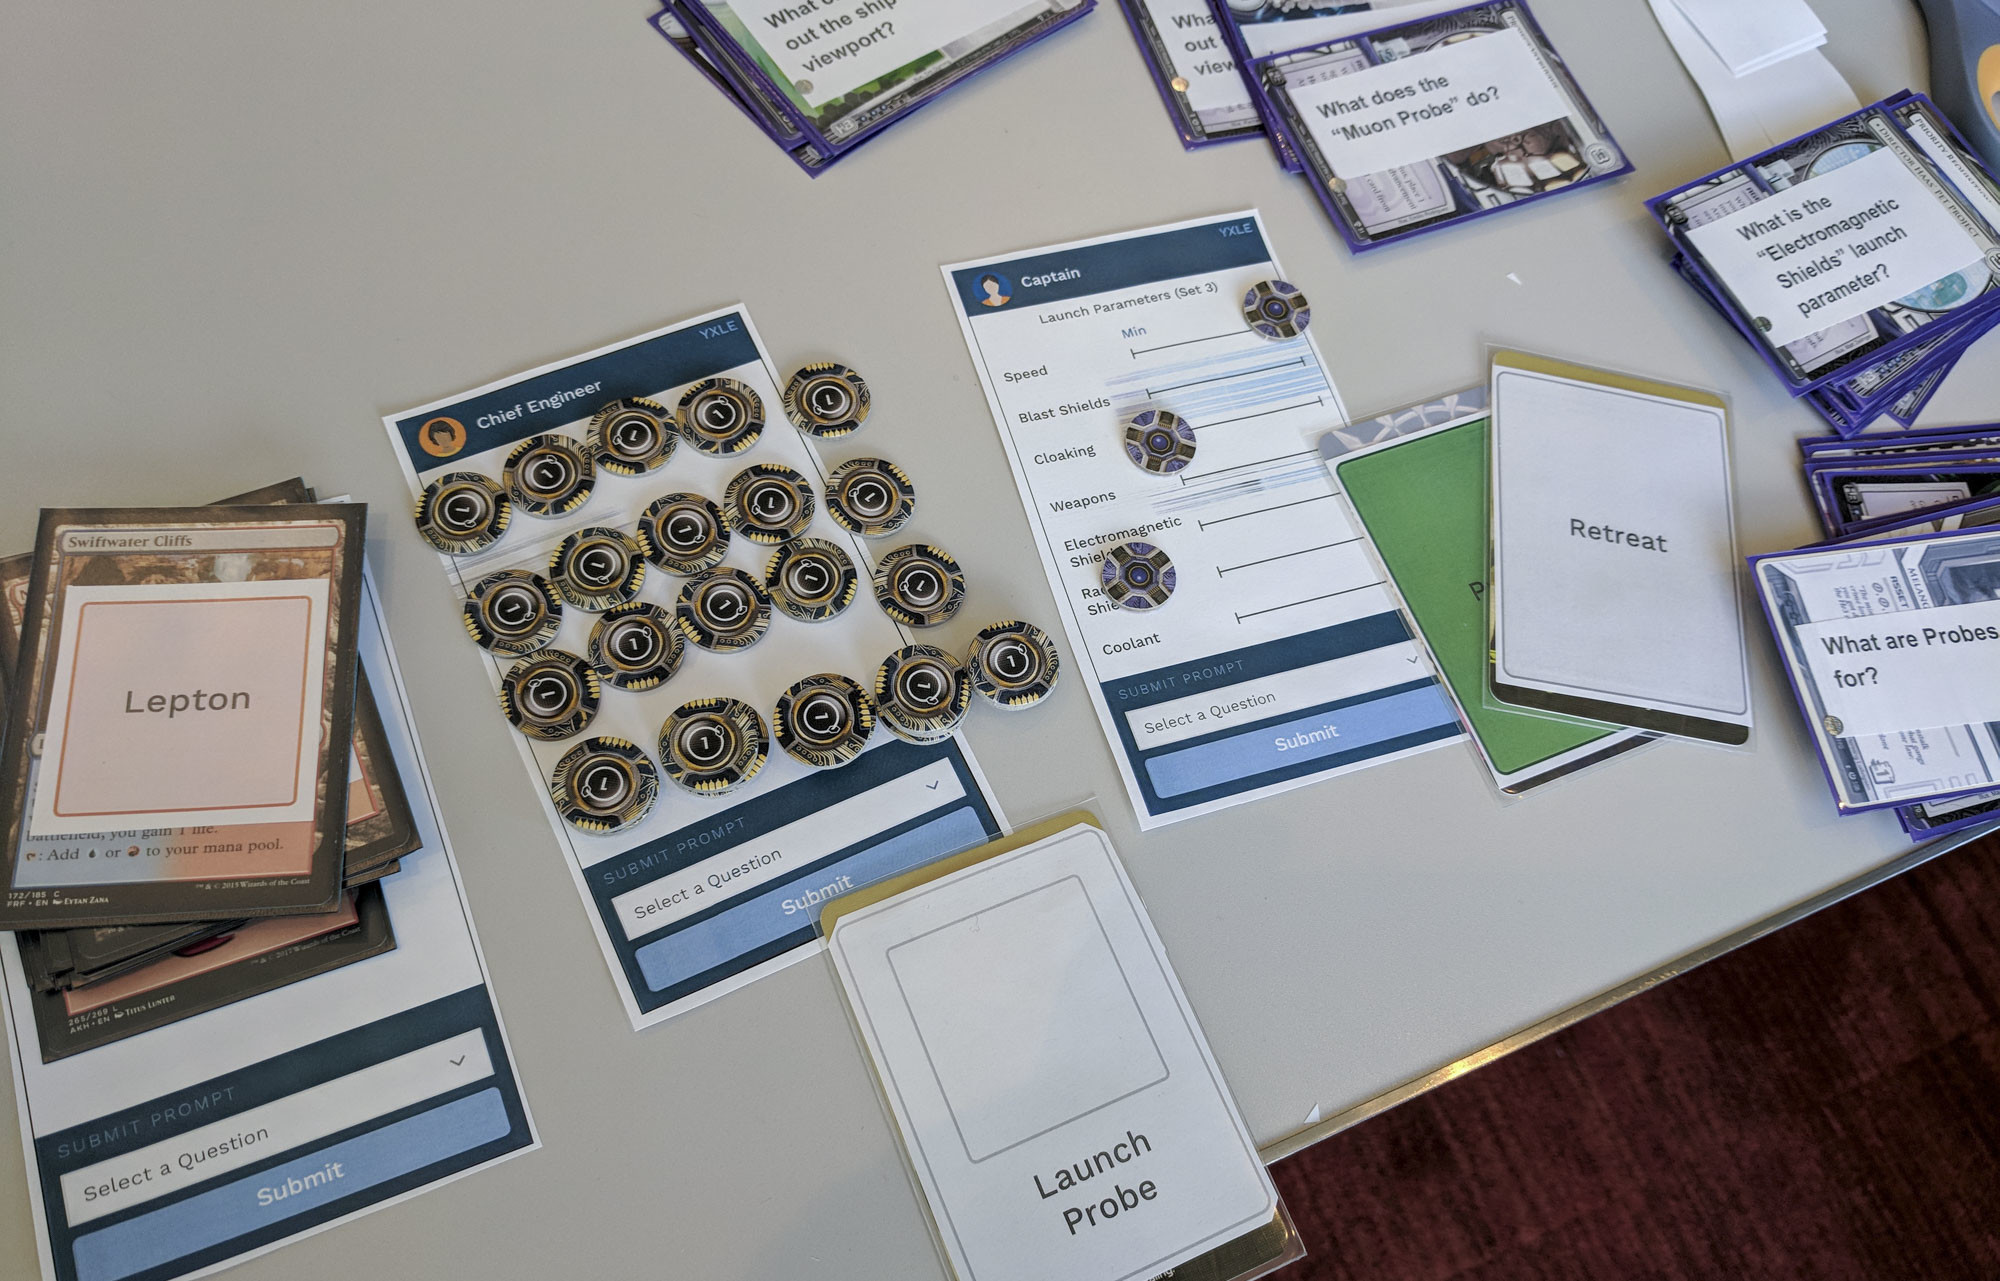 Paper prototypes and repurposed board game tokens used during the first play test.